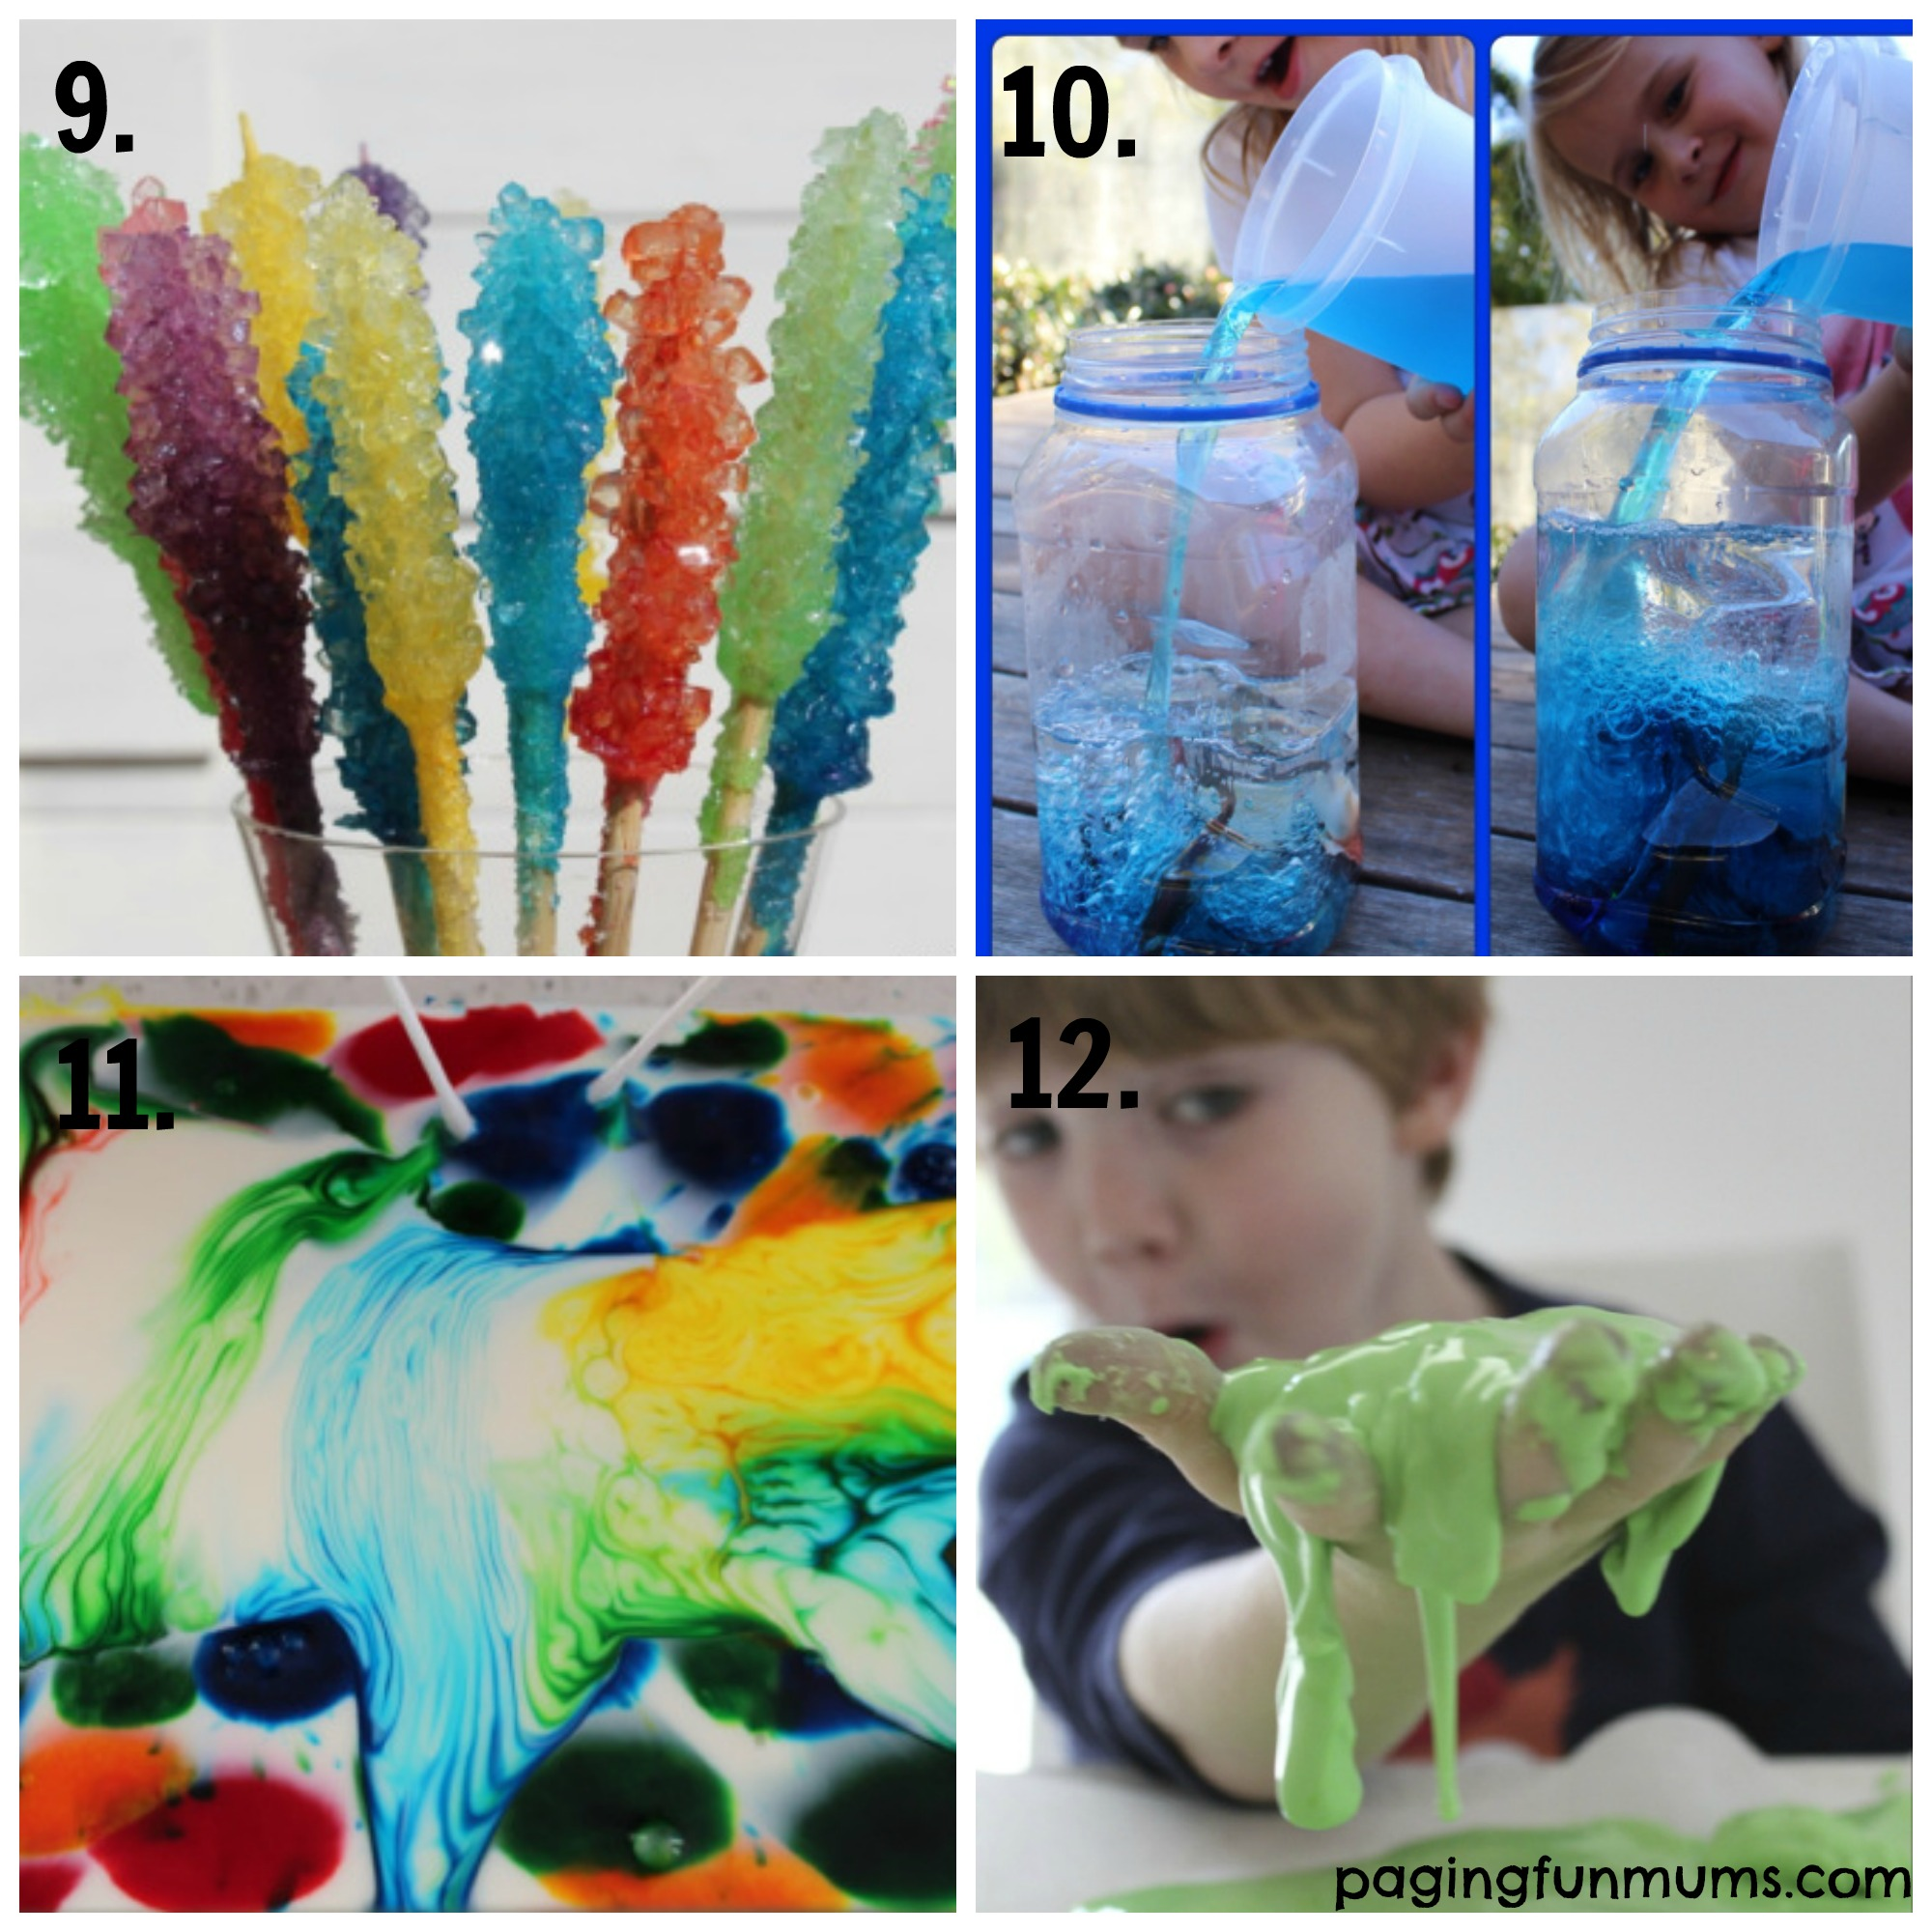 Fun science activities for kids paging fun mums for Fun projects for kids to do at home